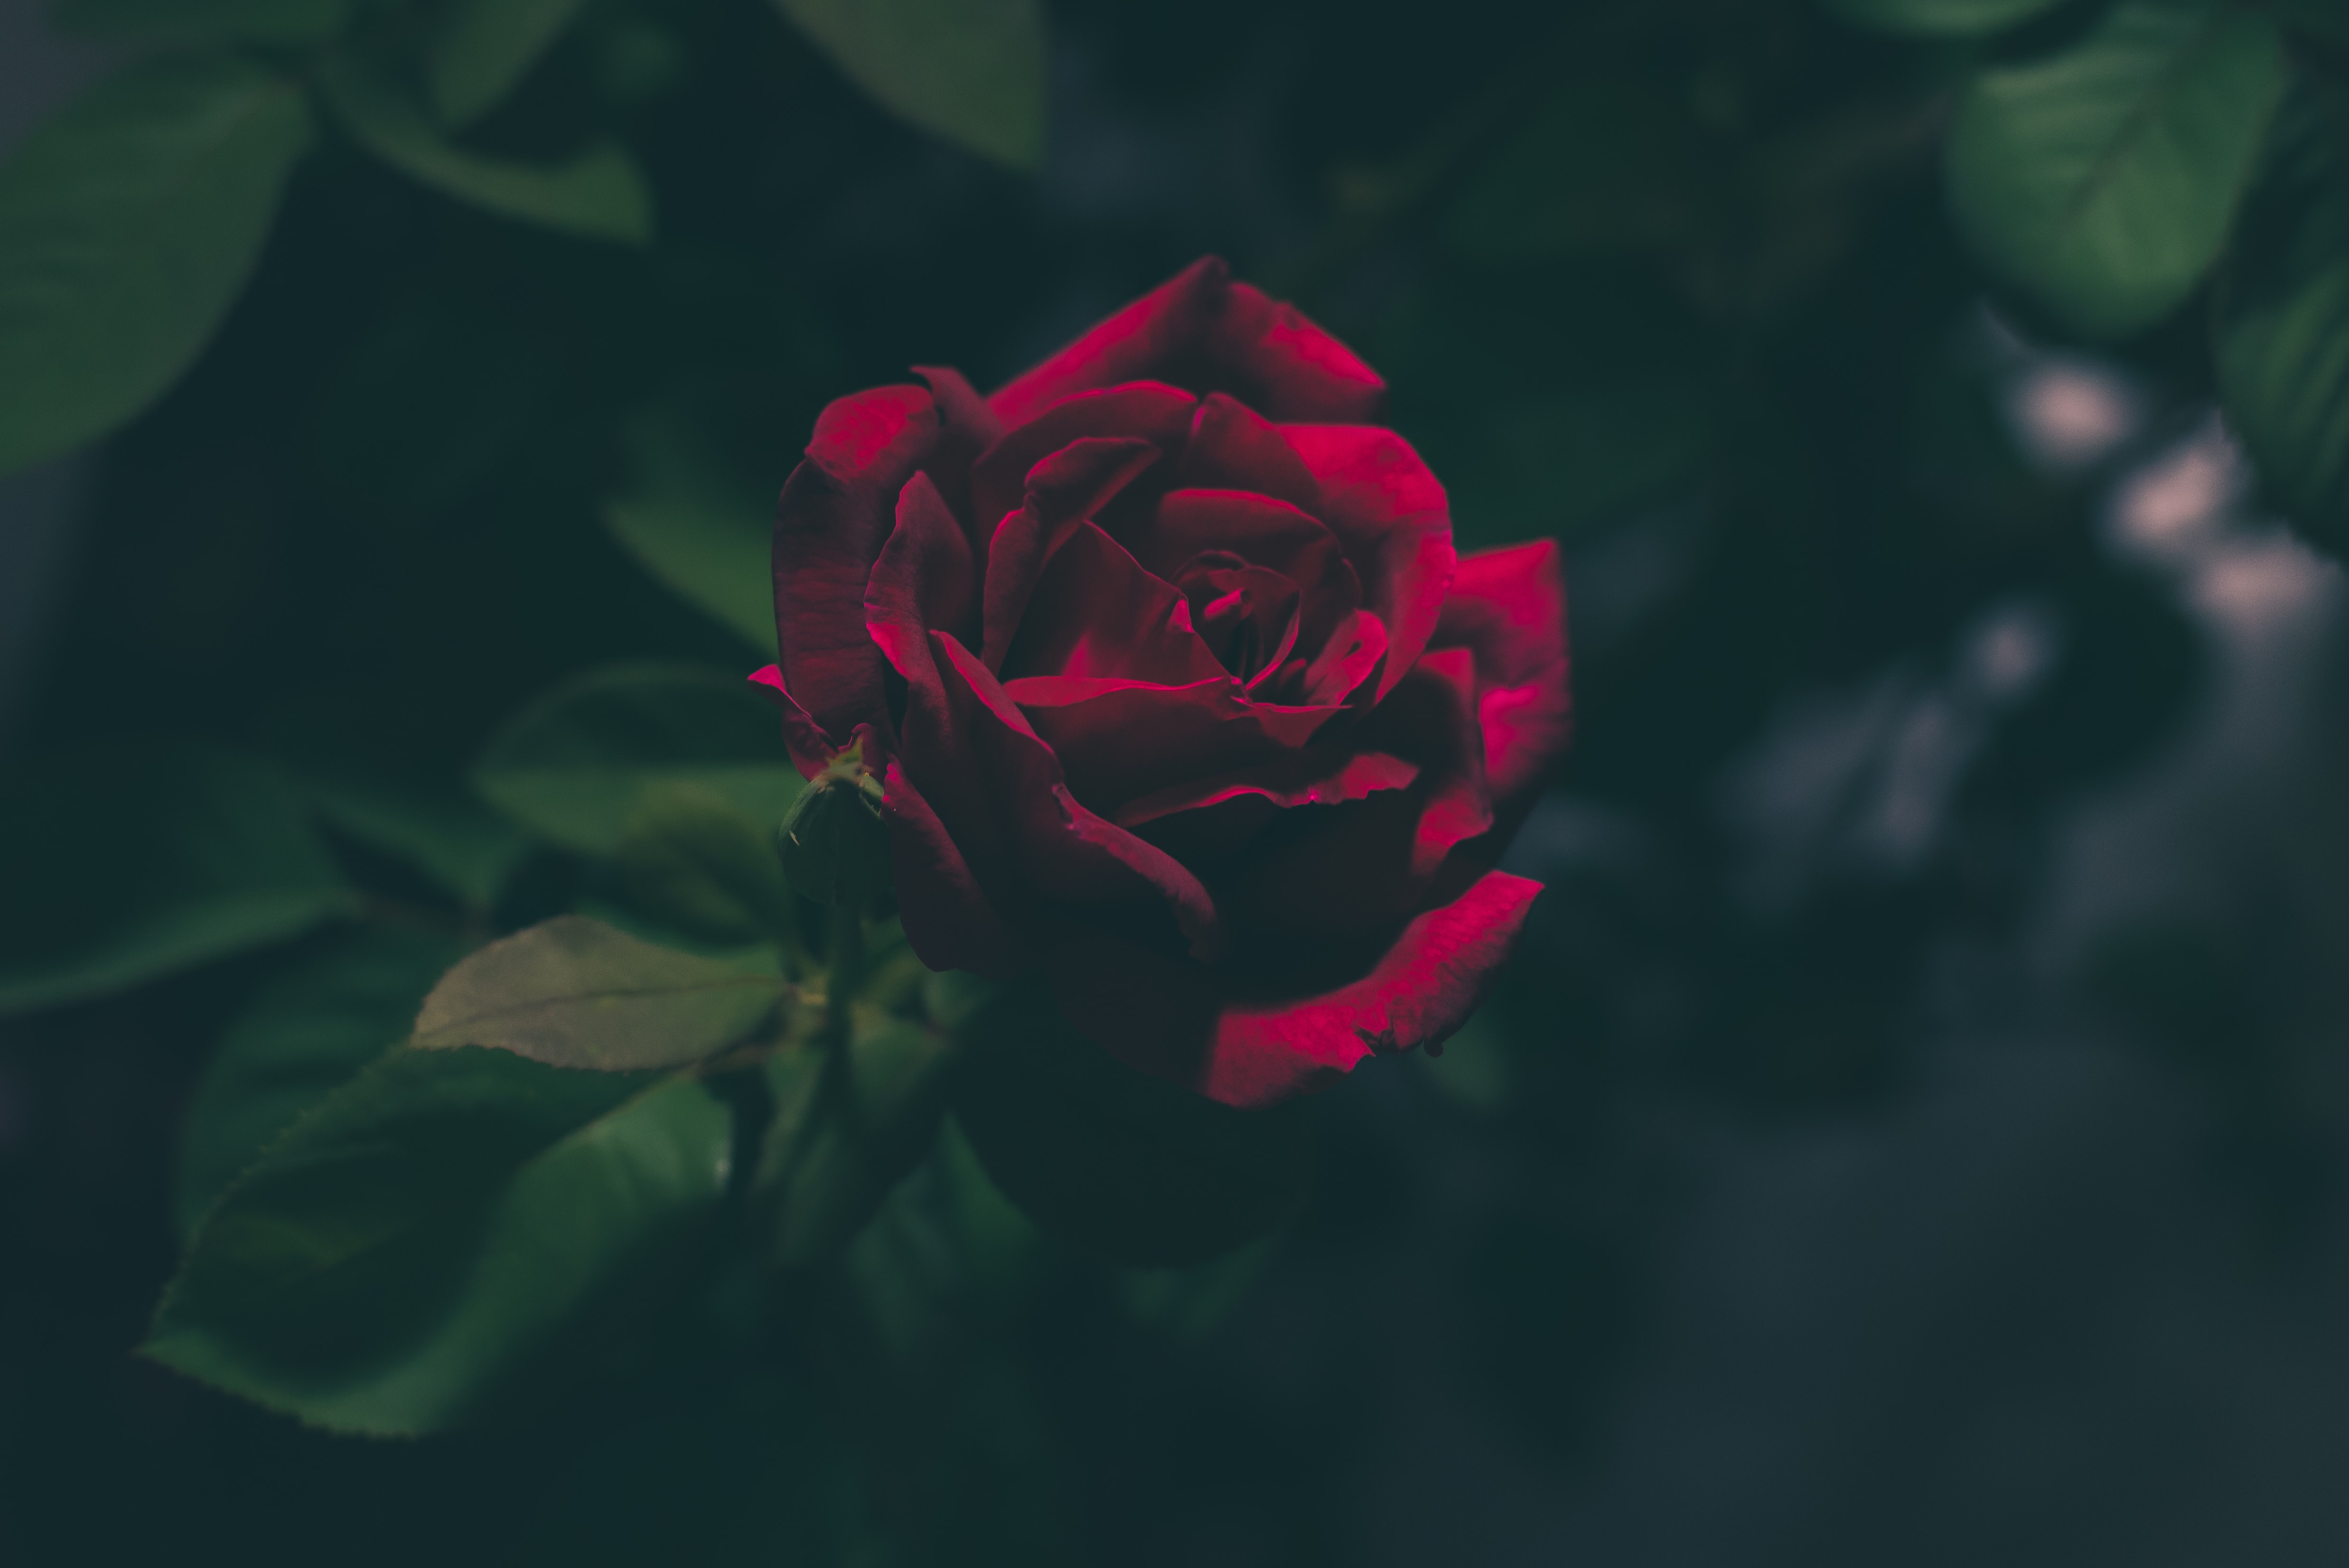 Free Unsplash photo from Jez Timms